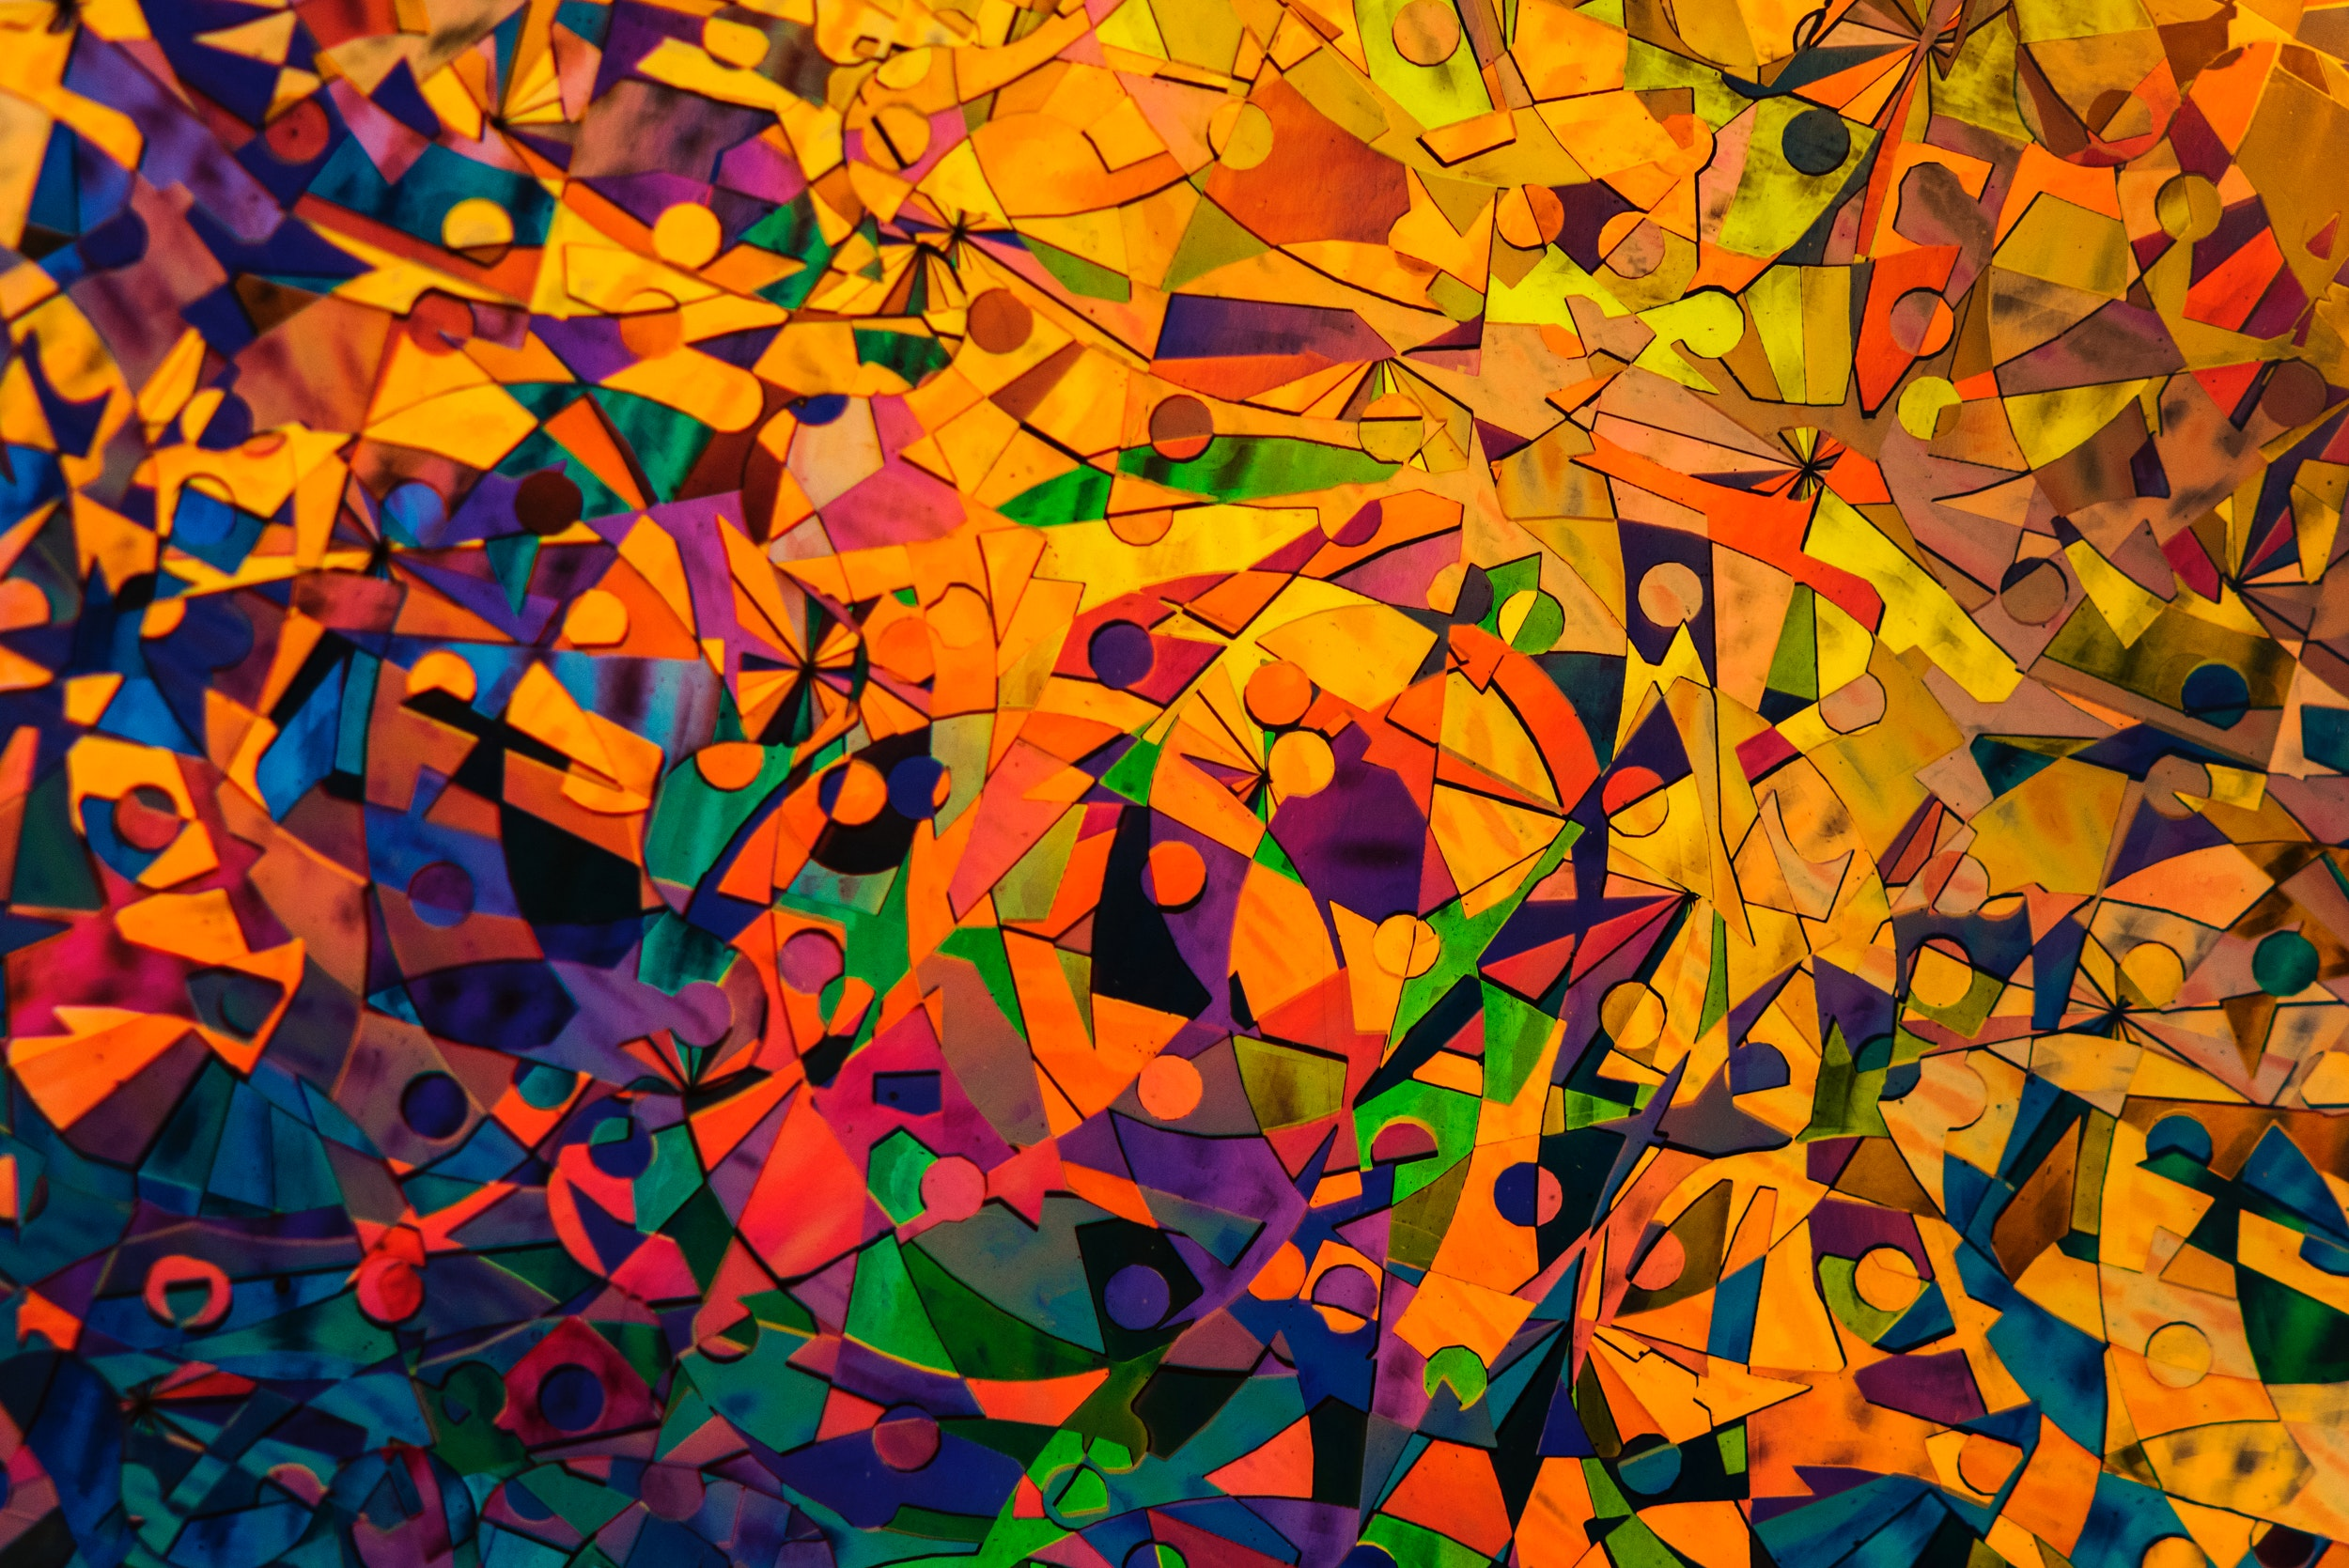 abstract-art-artistic-990824